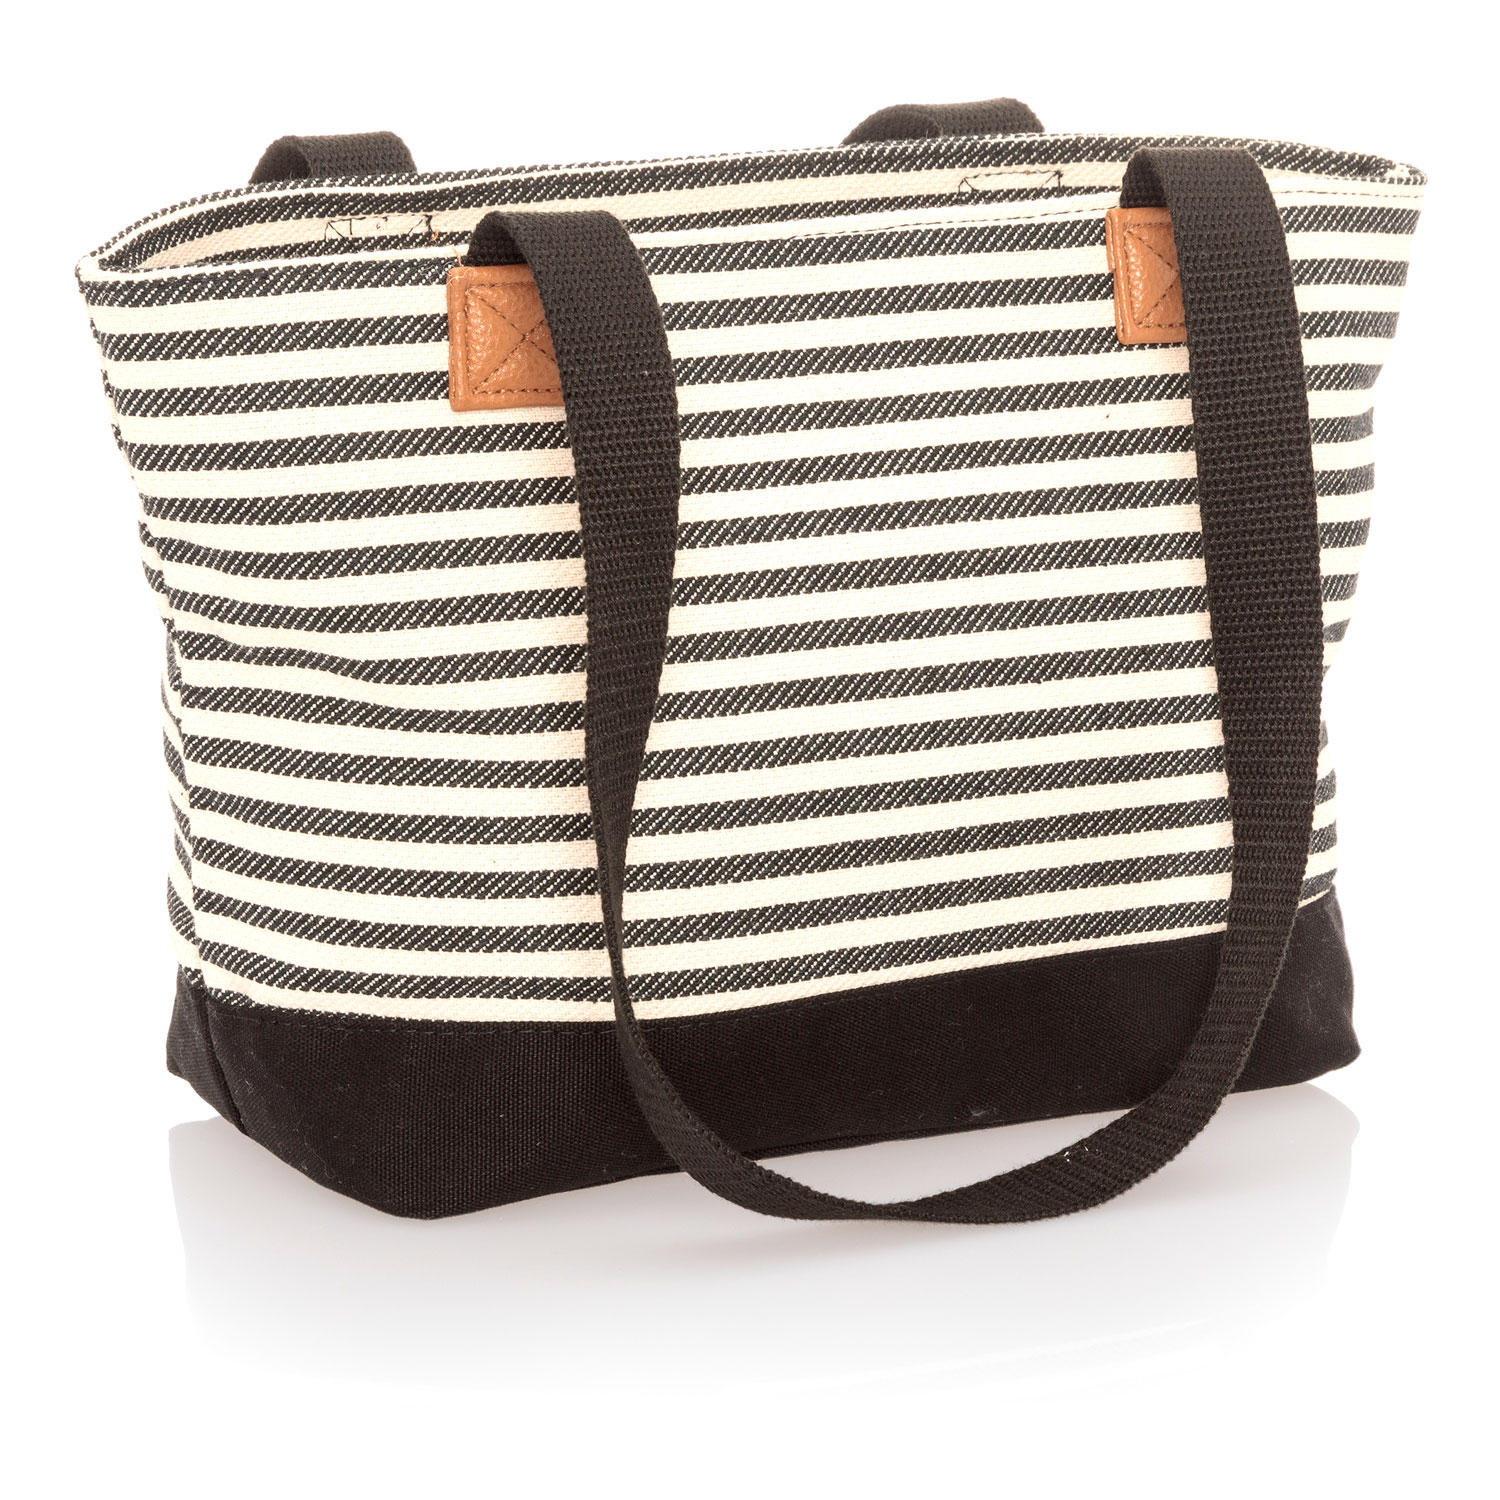 Twill Stripe - Demi Day Bag - Thirty-One Gifts 7dde419fa